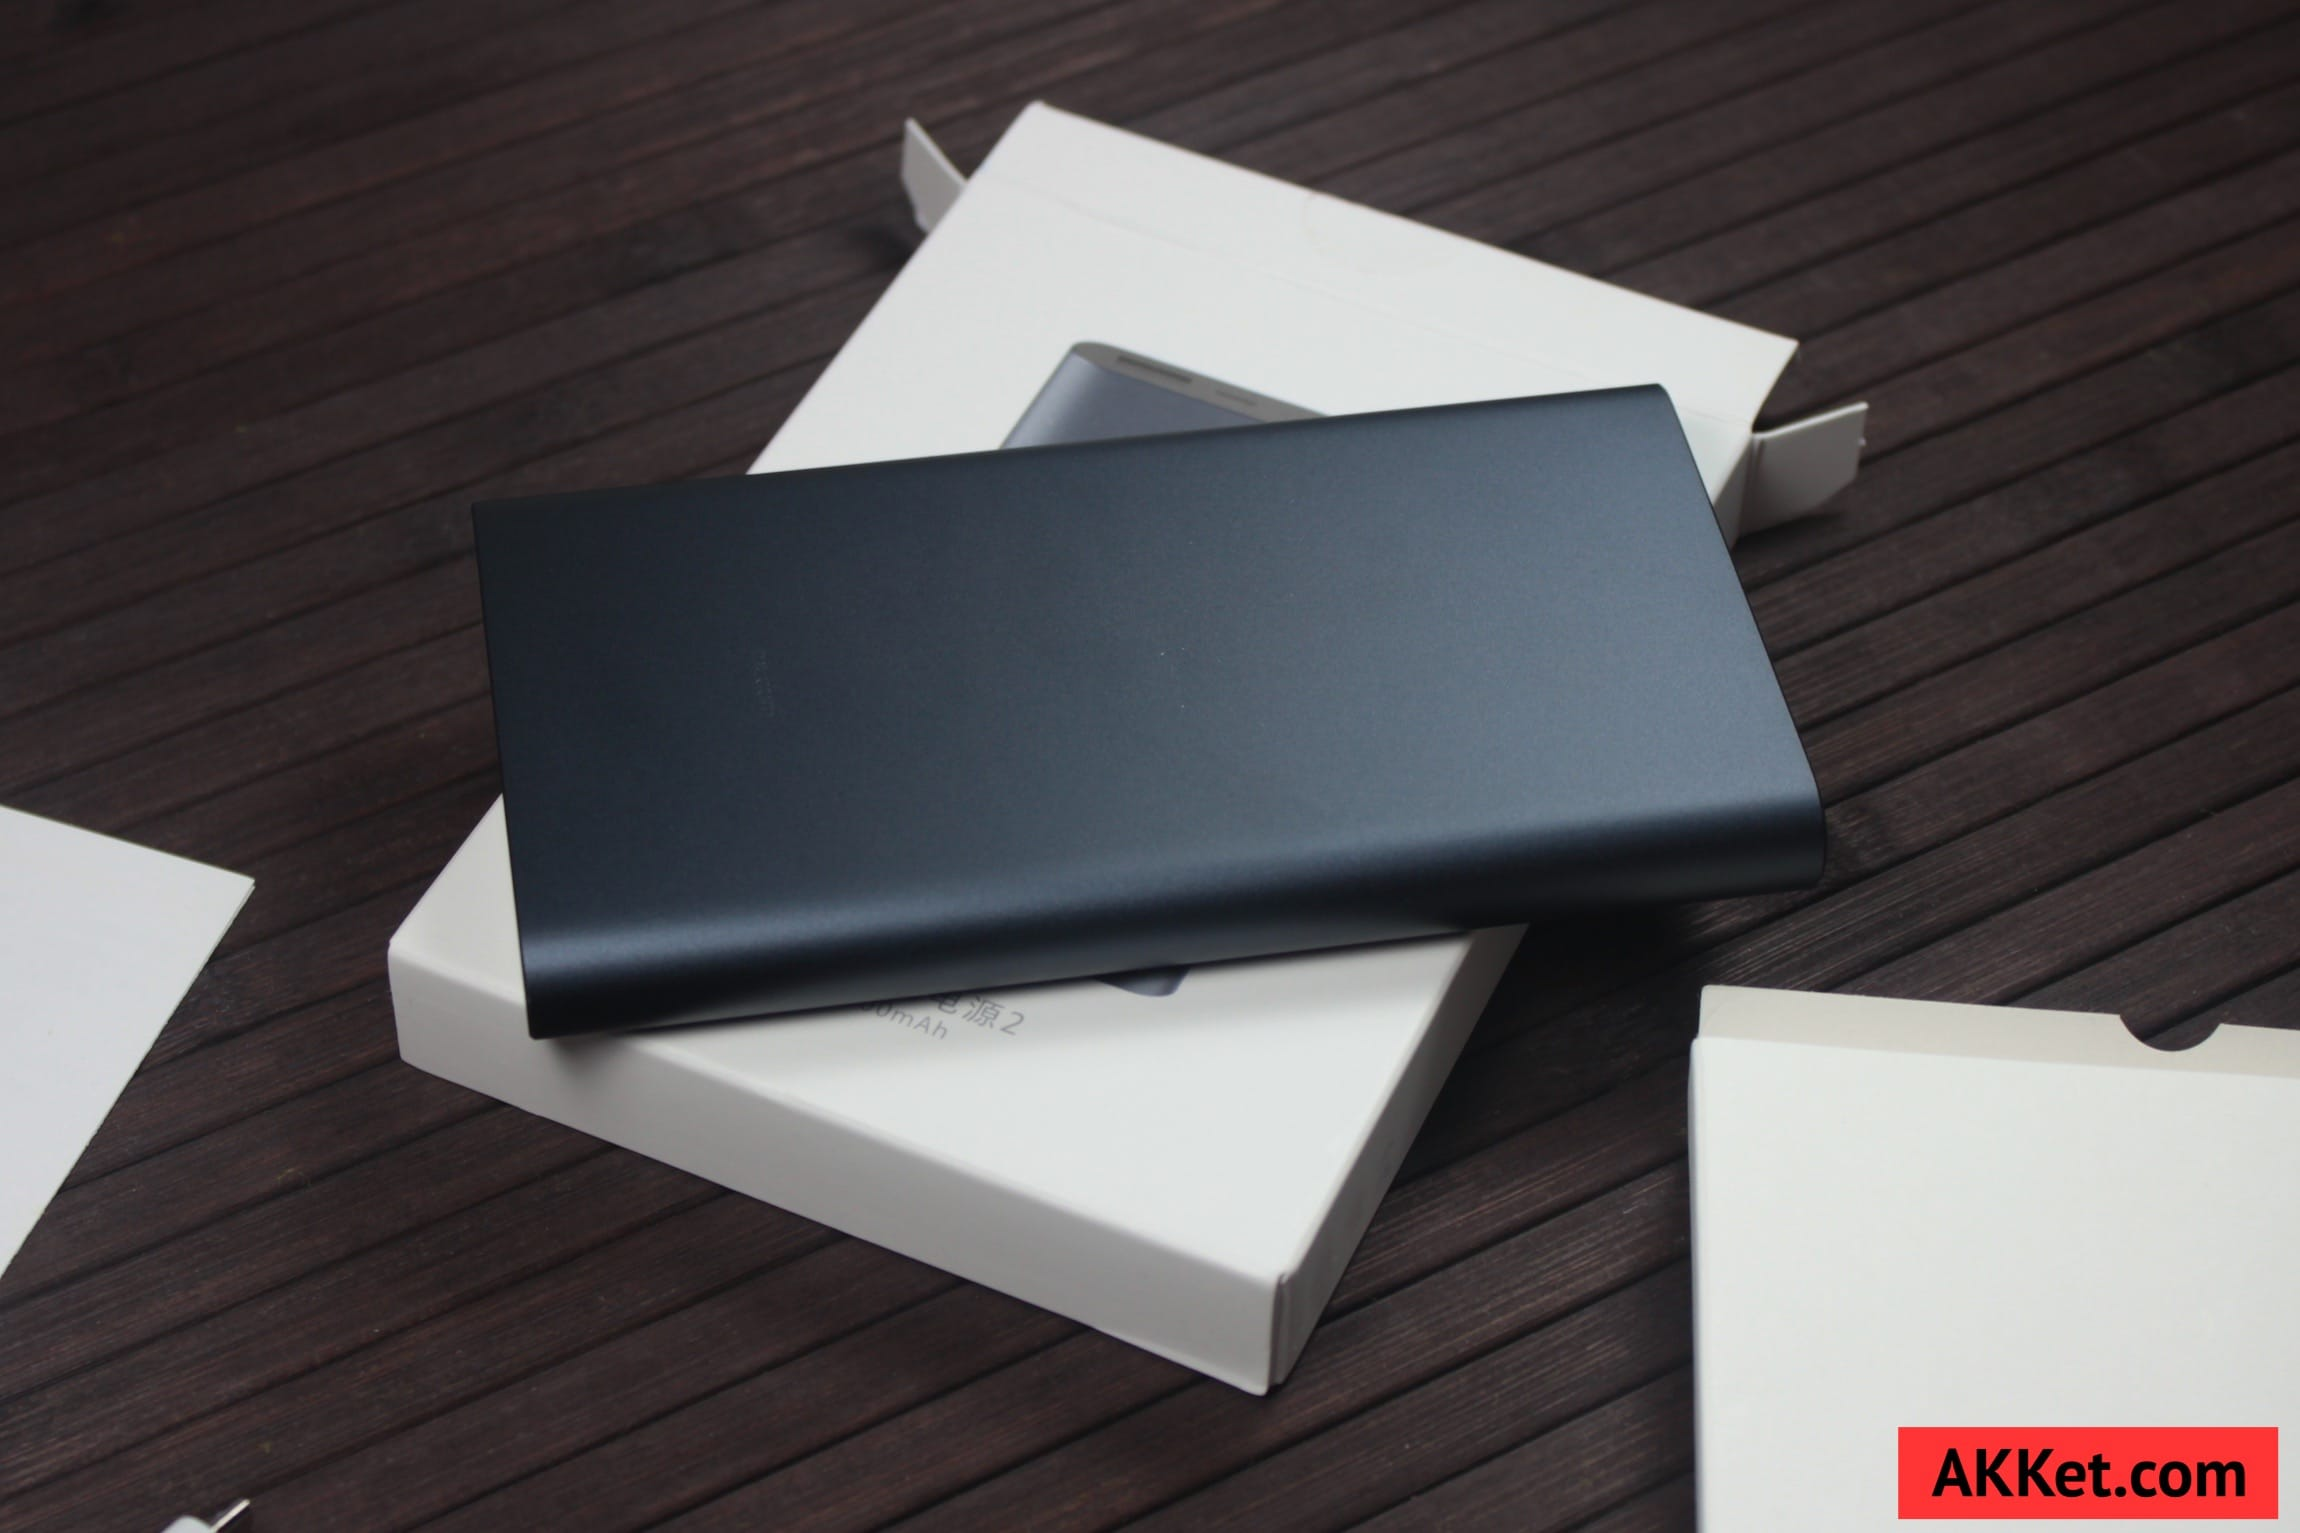 Xiaomi Mi Power Bank 10000 mAh Review iPhone SE AKKet.com 12